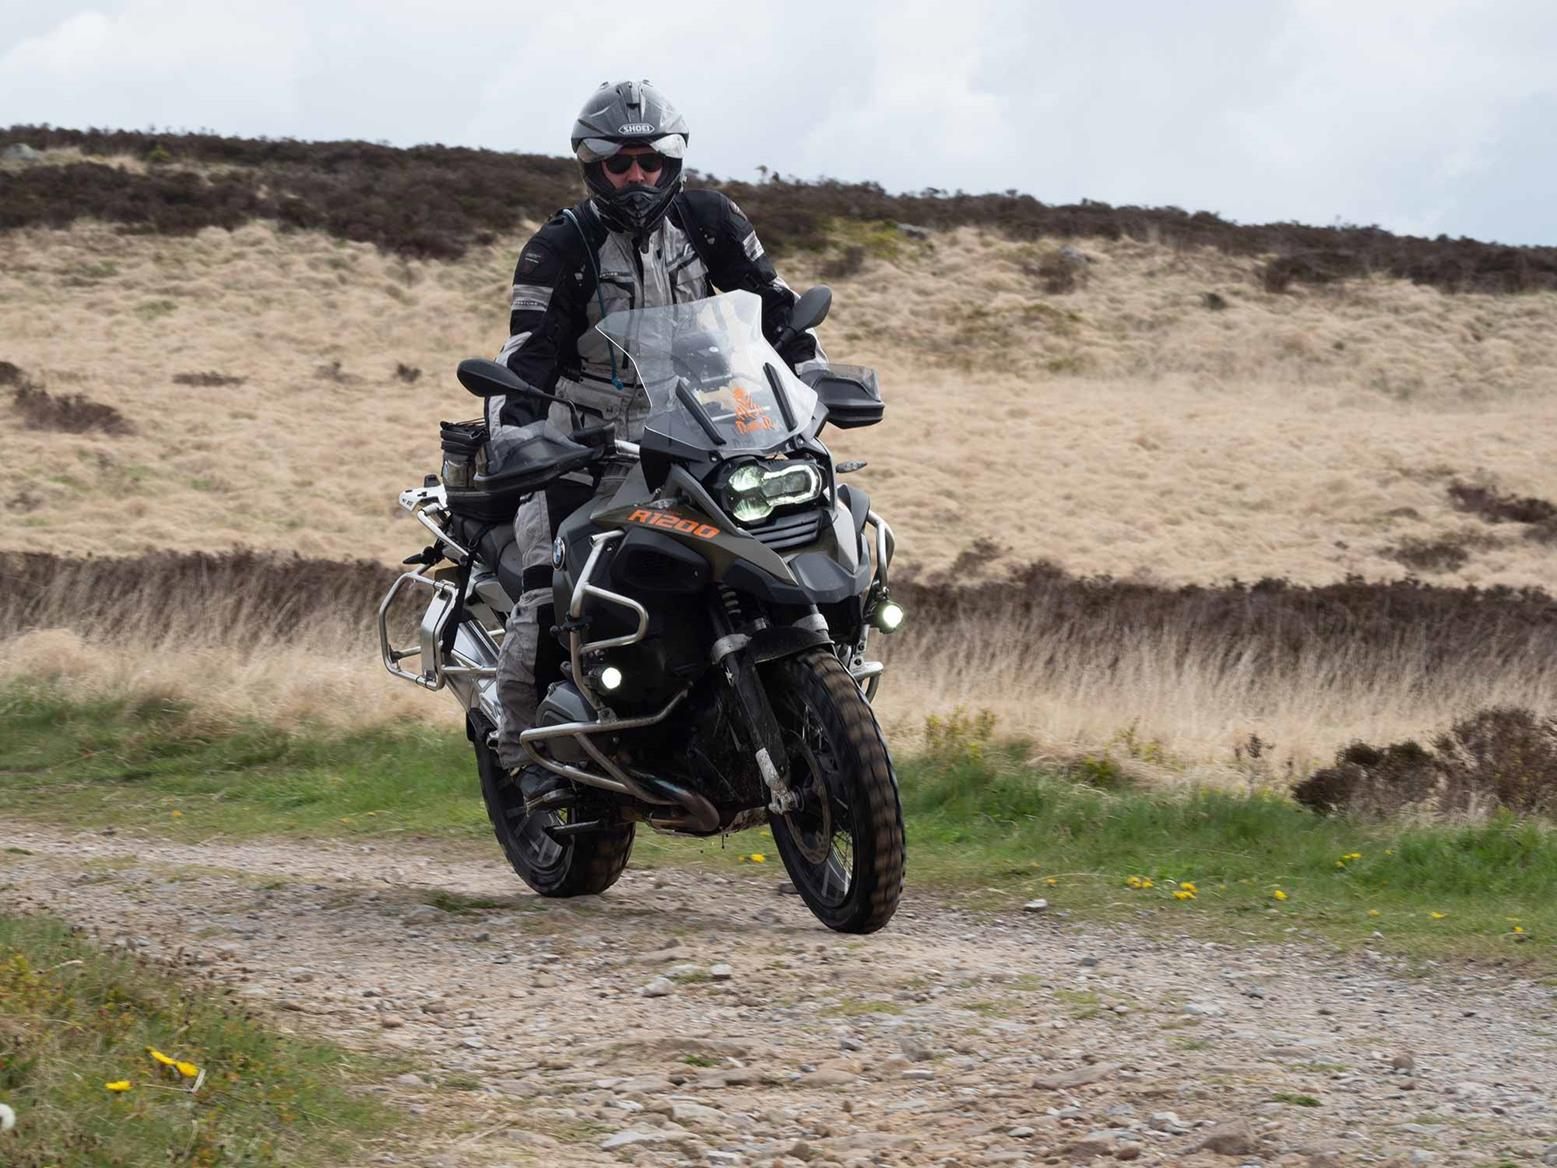 Riding on a BMW R1200GSA off-road